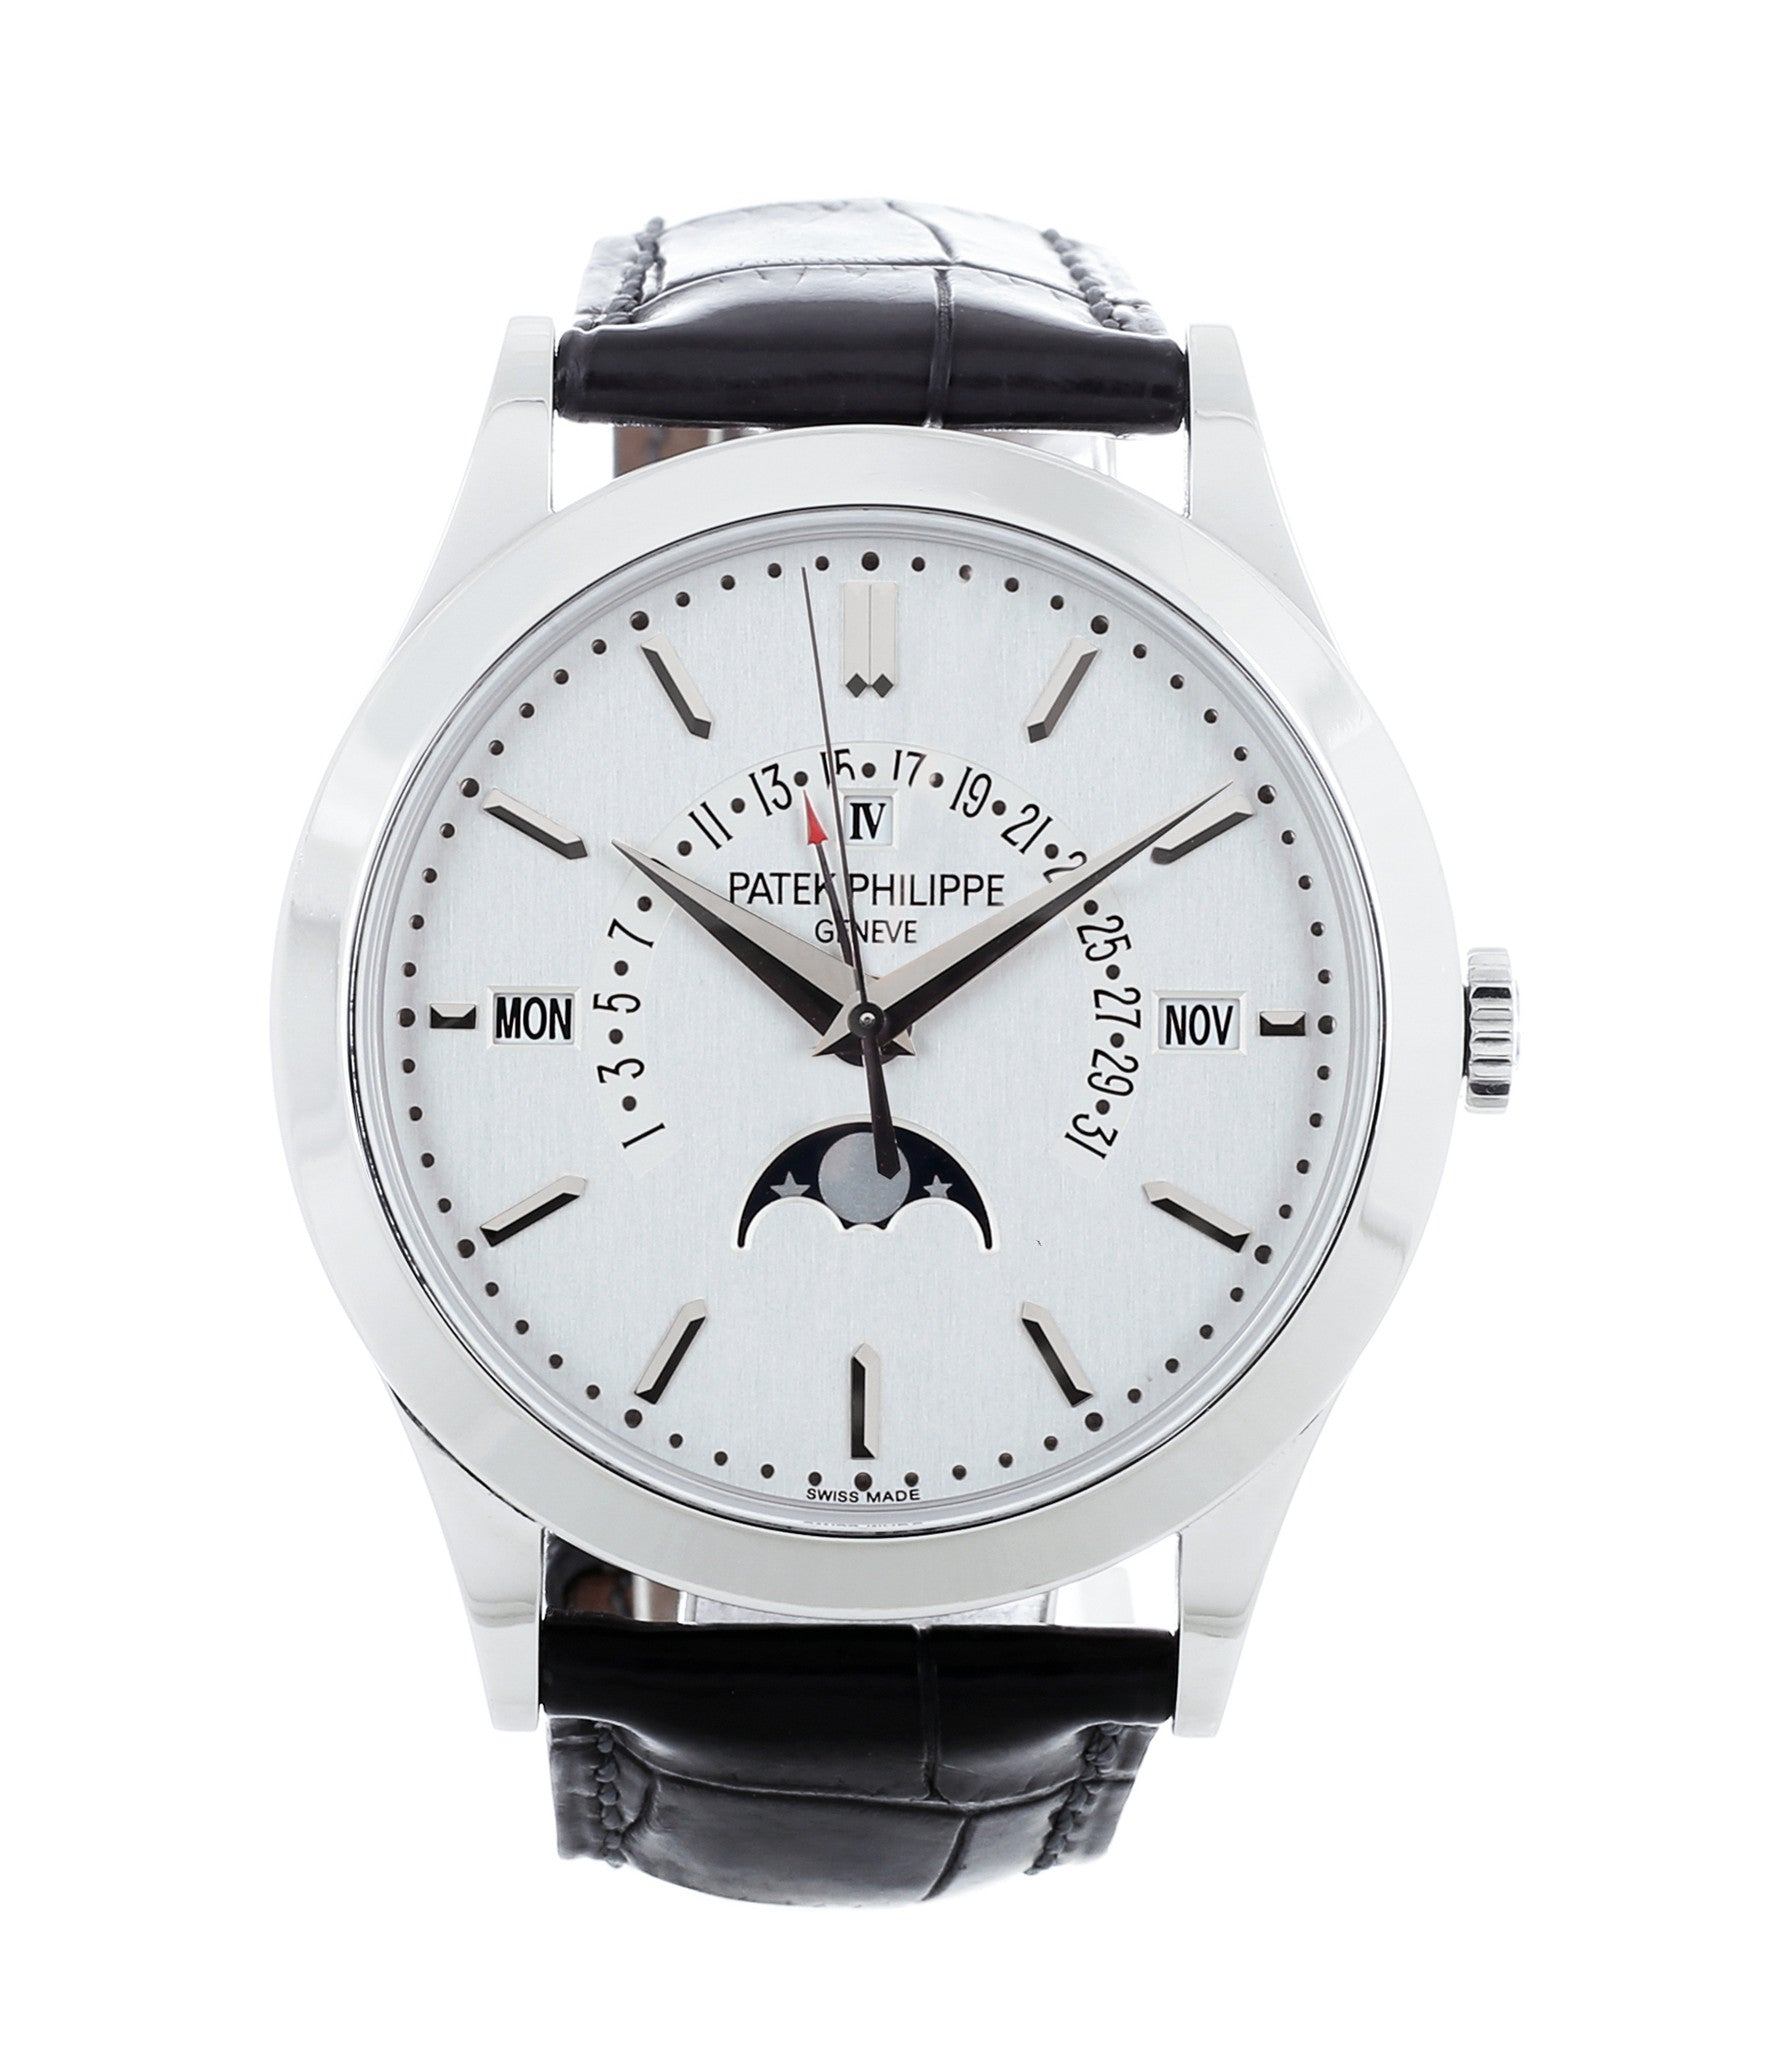 buy Patek Philippe Perpetual Calendar 5496P-001 grand complication platinum full-set dress watch online at WATCH XCHANGE London with discontinued dial layout